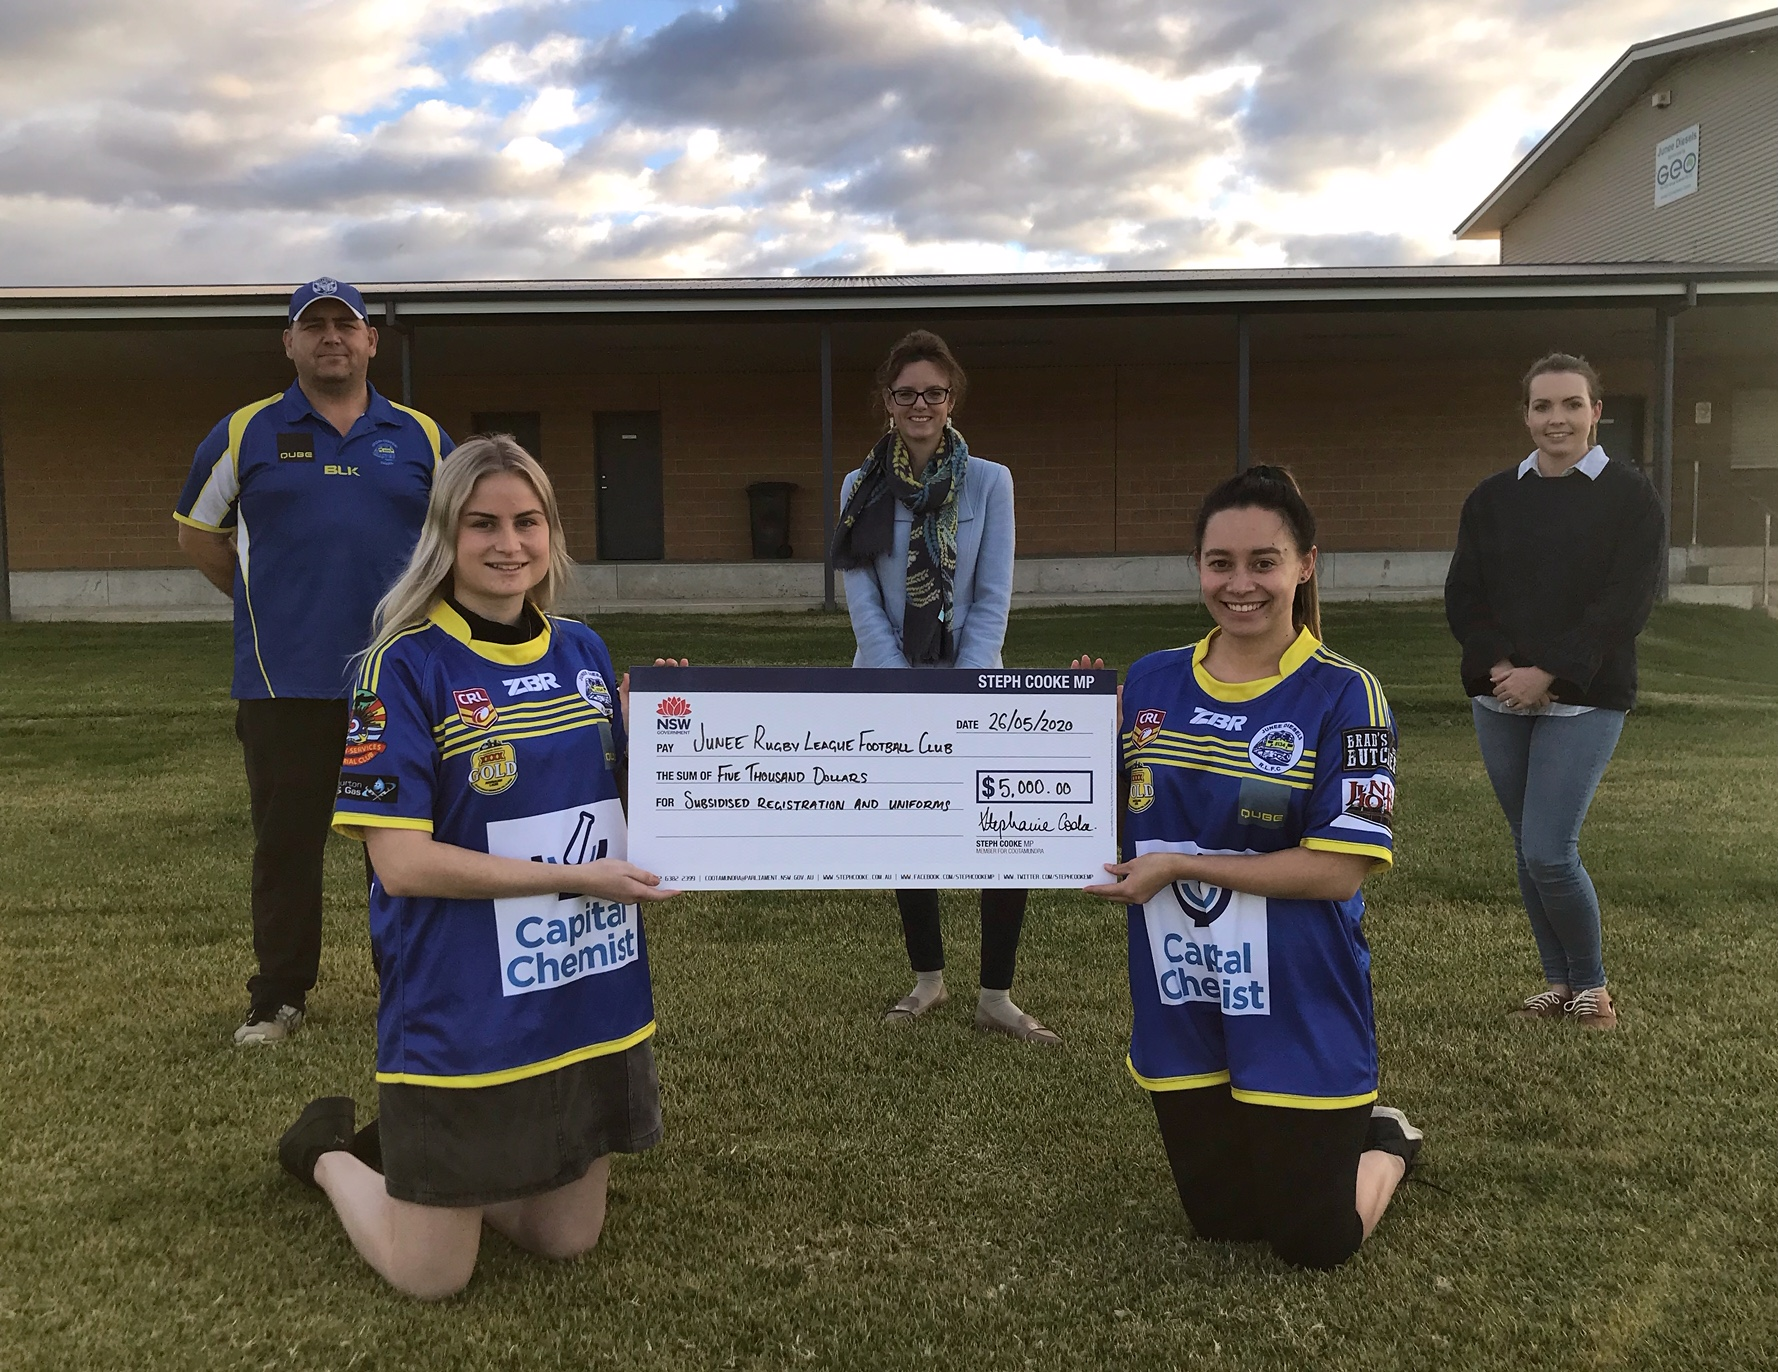 Steph Cooke MP stands behind a large cheque held by two women kneeling in football uniforms.